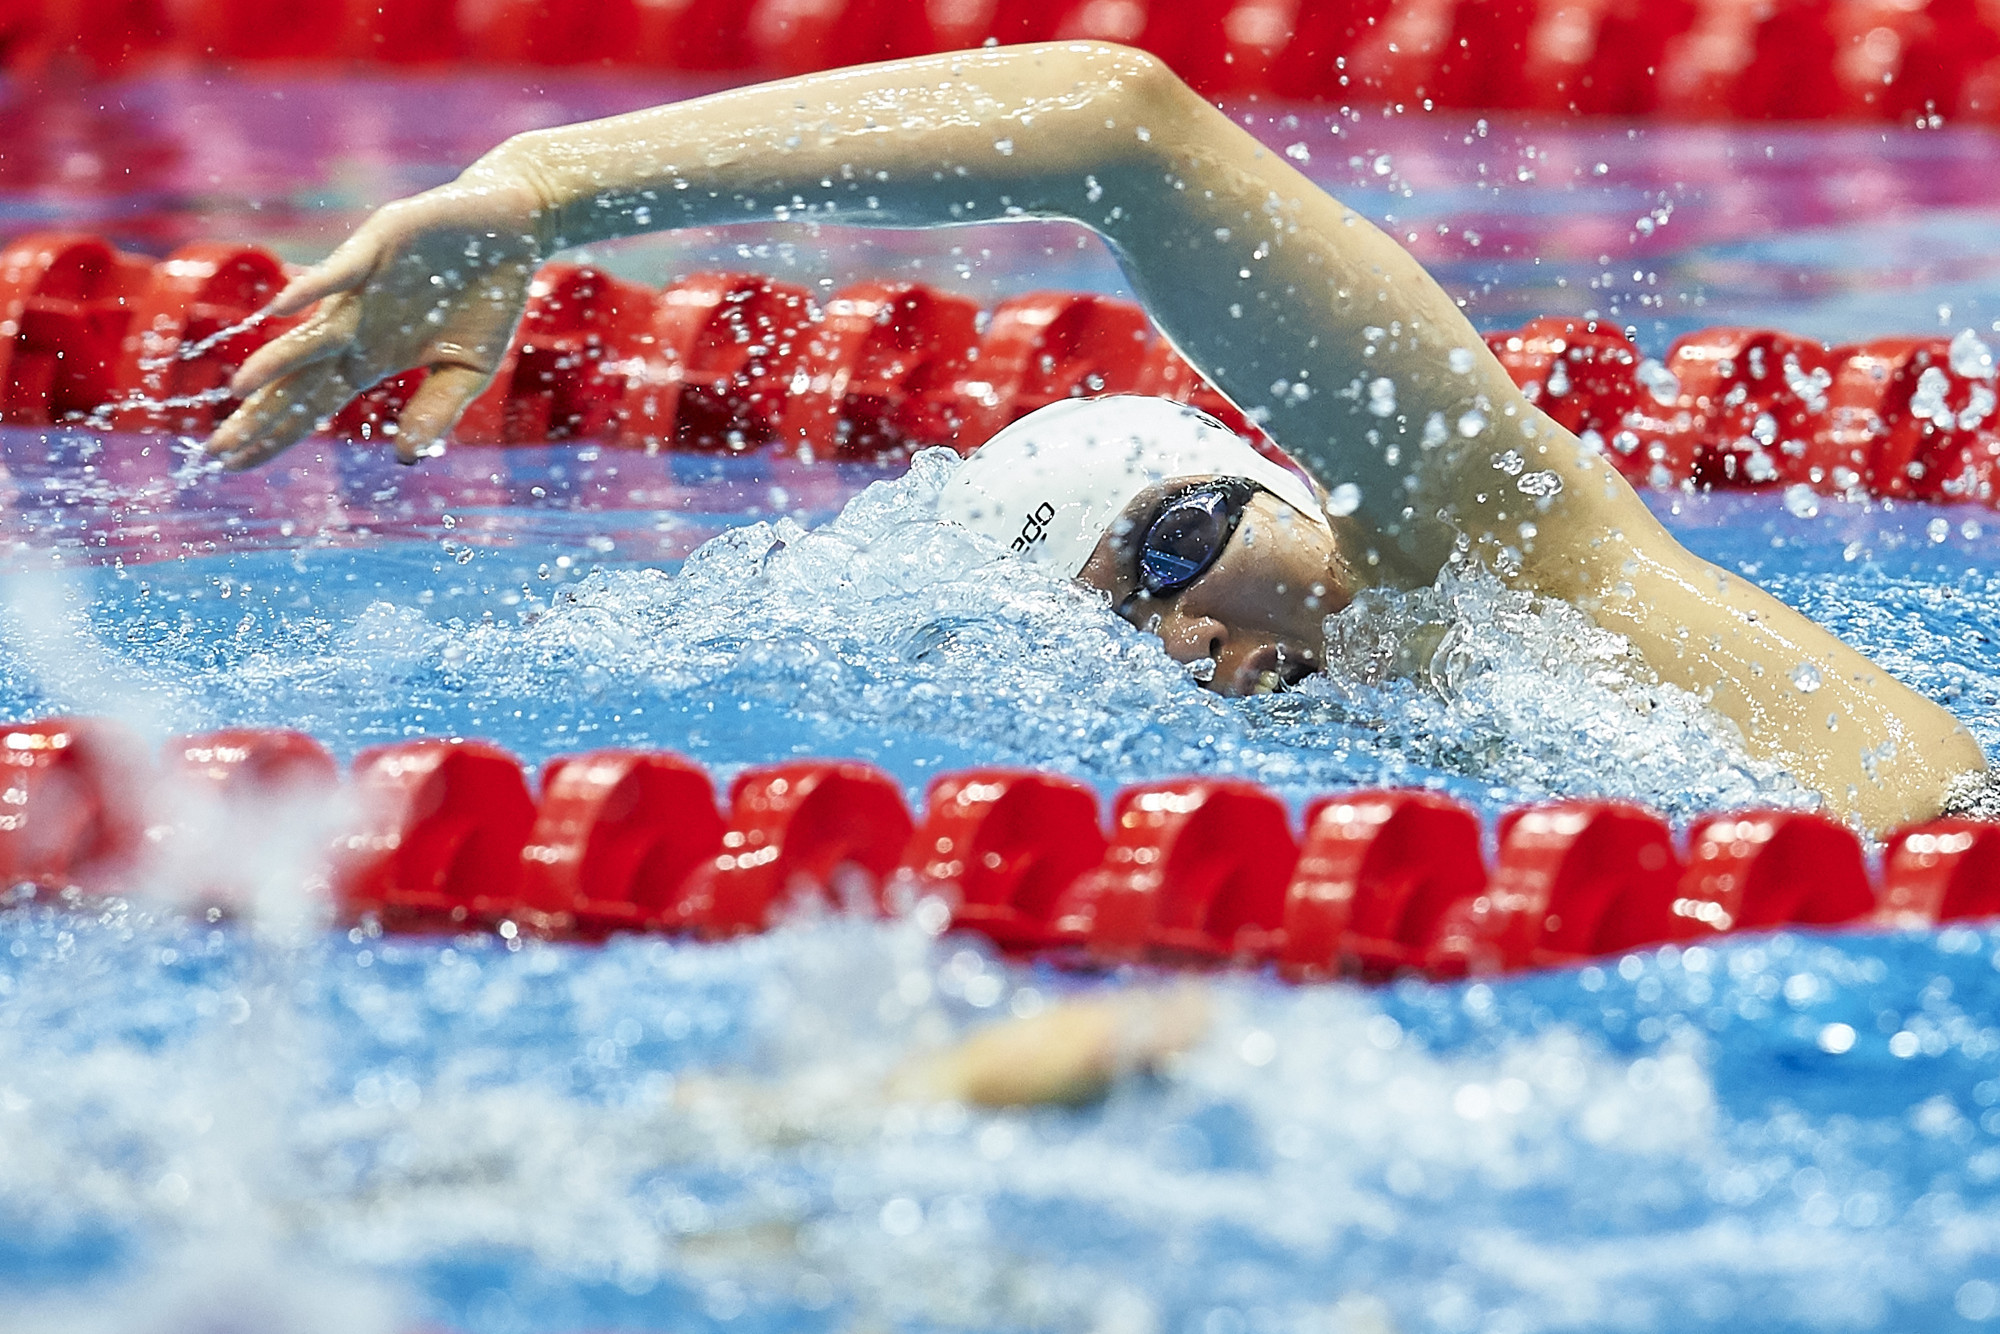 China's Sun Meichen smashed the women's 200m freestyle Games record ©Ashgabat 2017/Adam Nurkiewicz/Laurel Photo Services